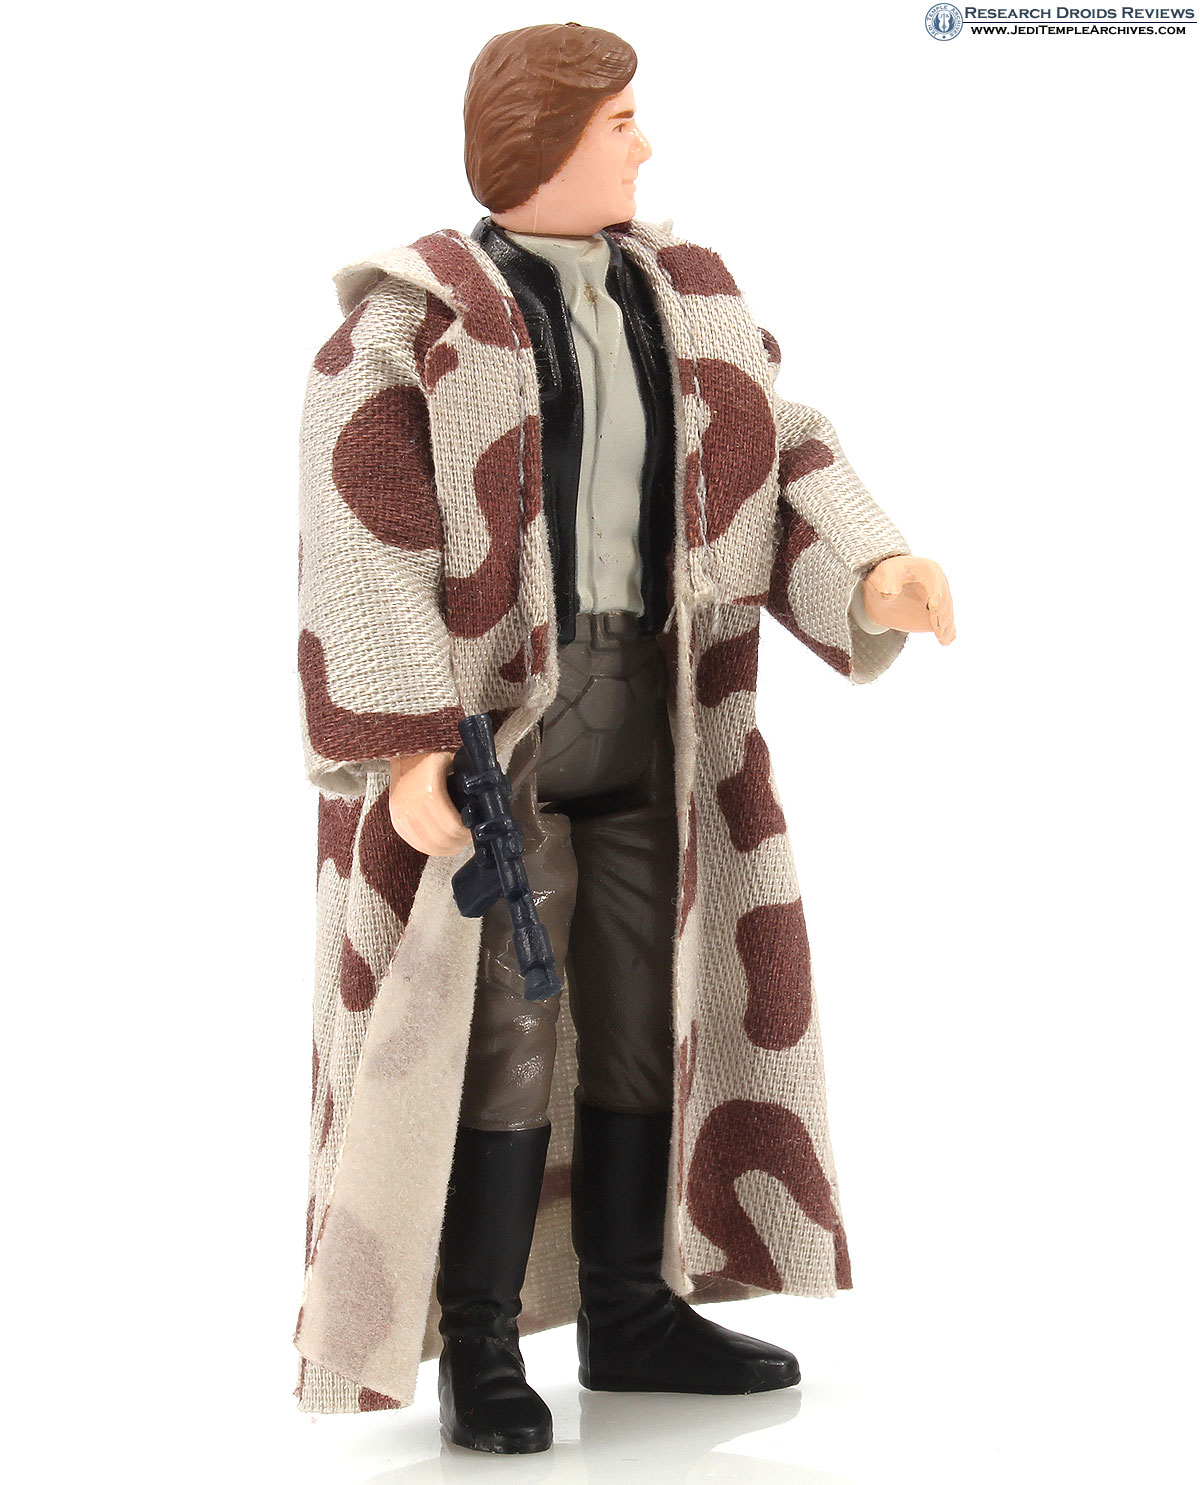 Han Solo in Trench Coat (Printed Lapels)